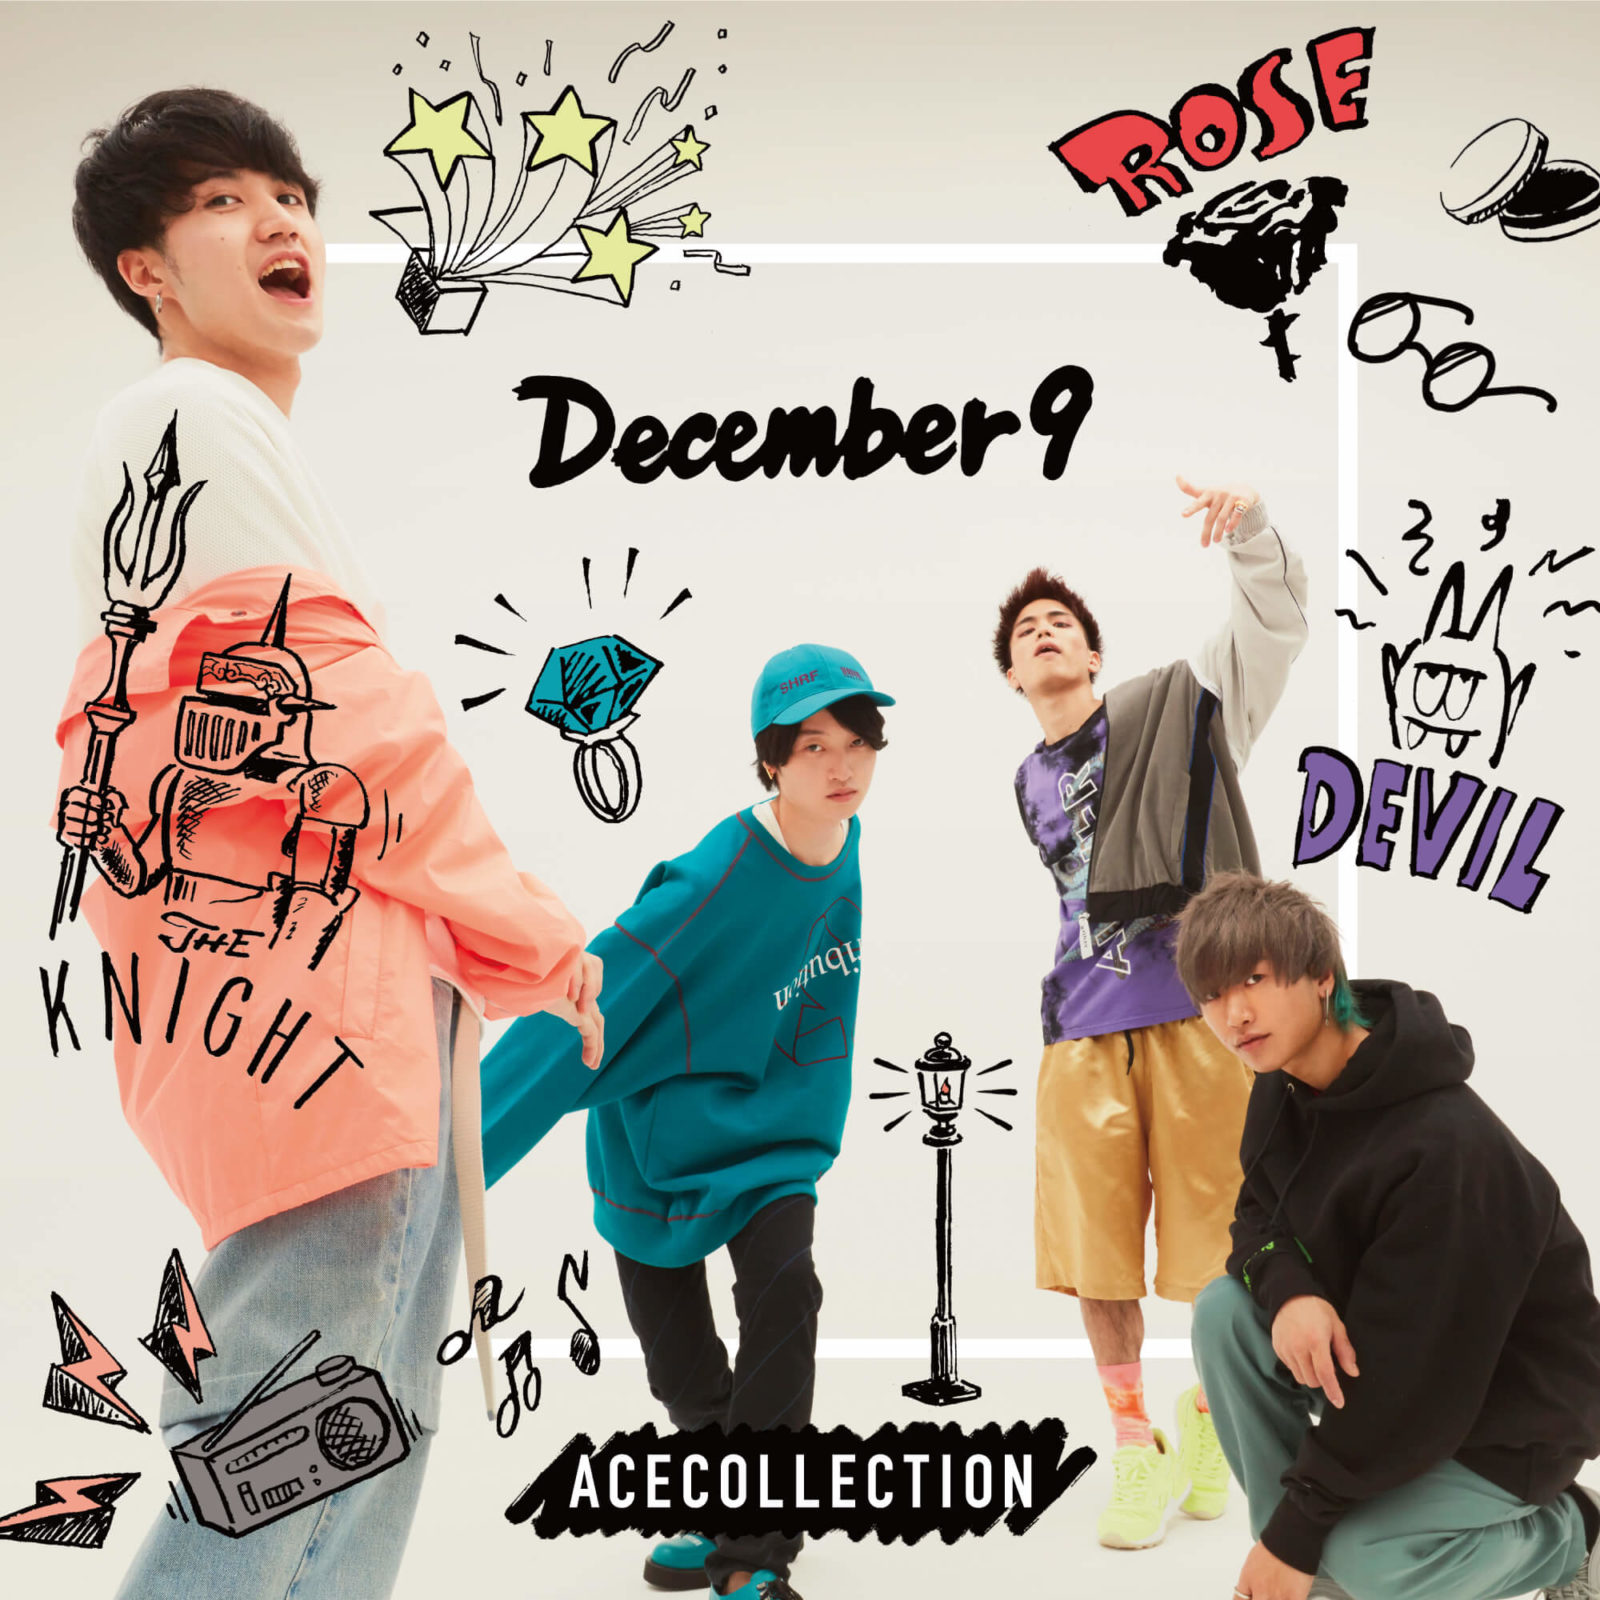 ACE COLLECTION、初アルバム「December 9」ジャケット&収録曲発表サムネイル画像